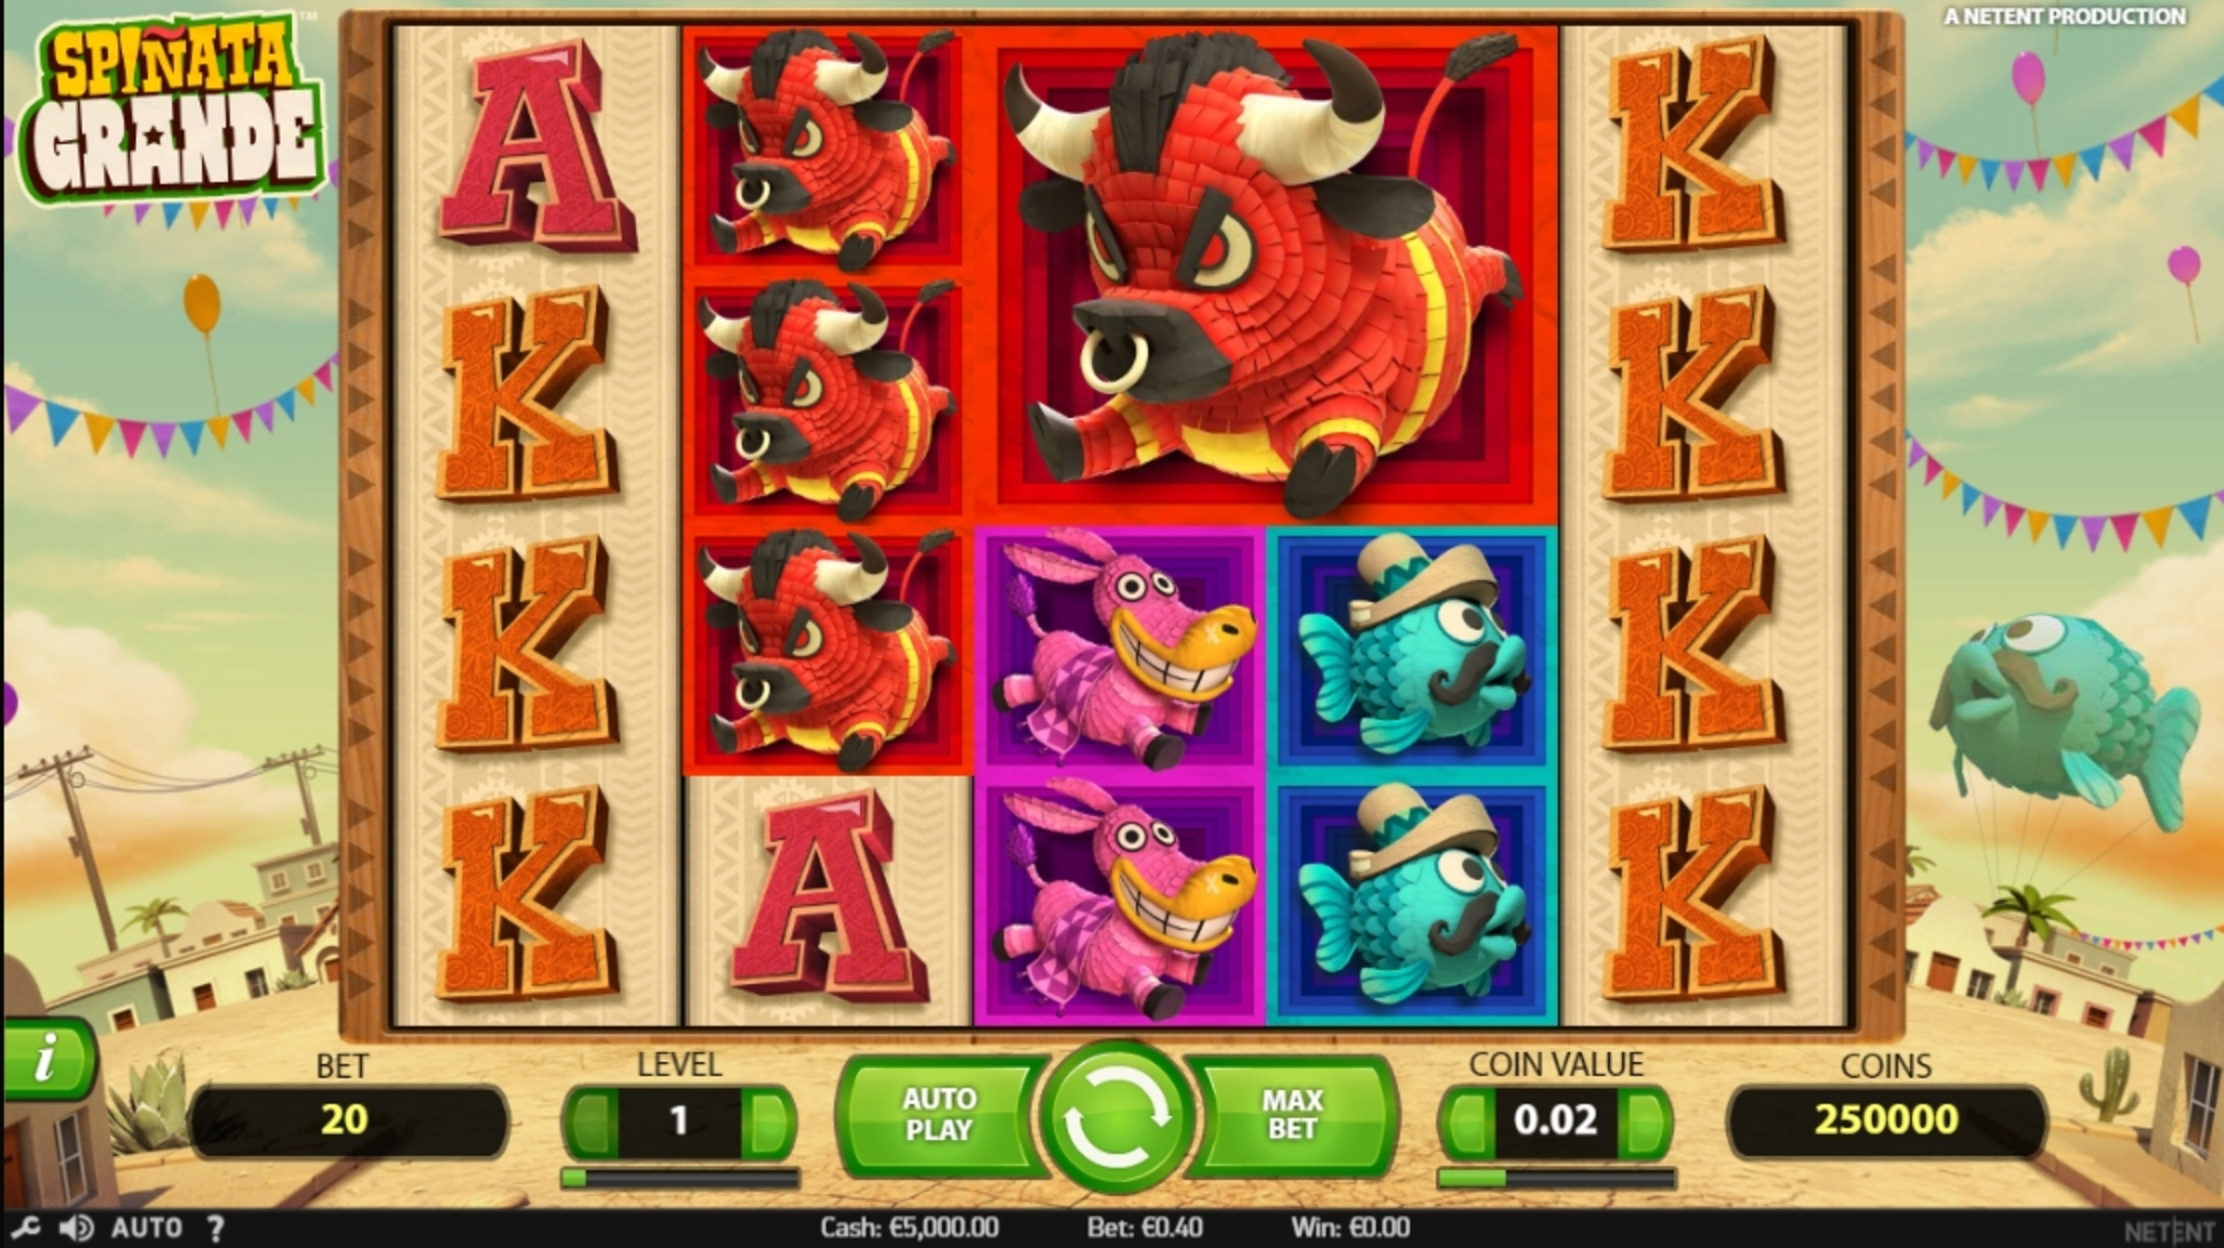 Reels in Spinata Grande Slot Game by NetEnt